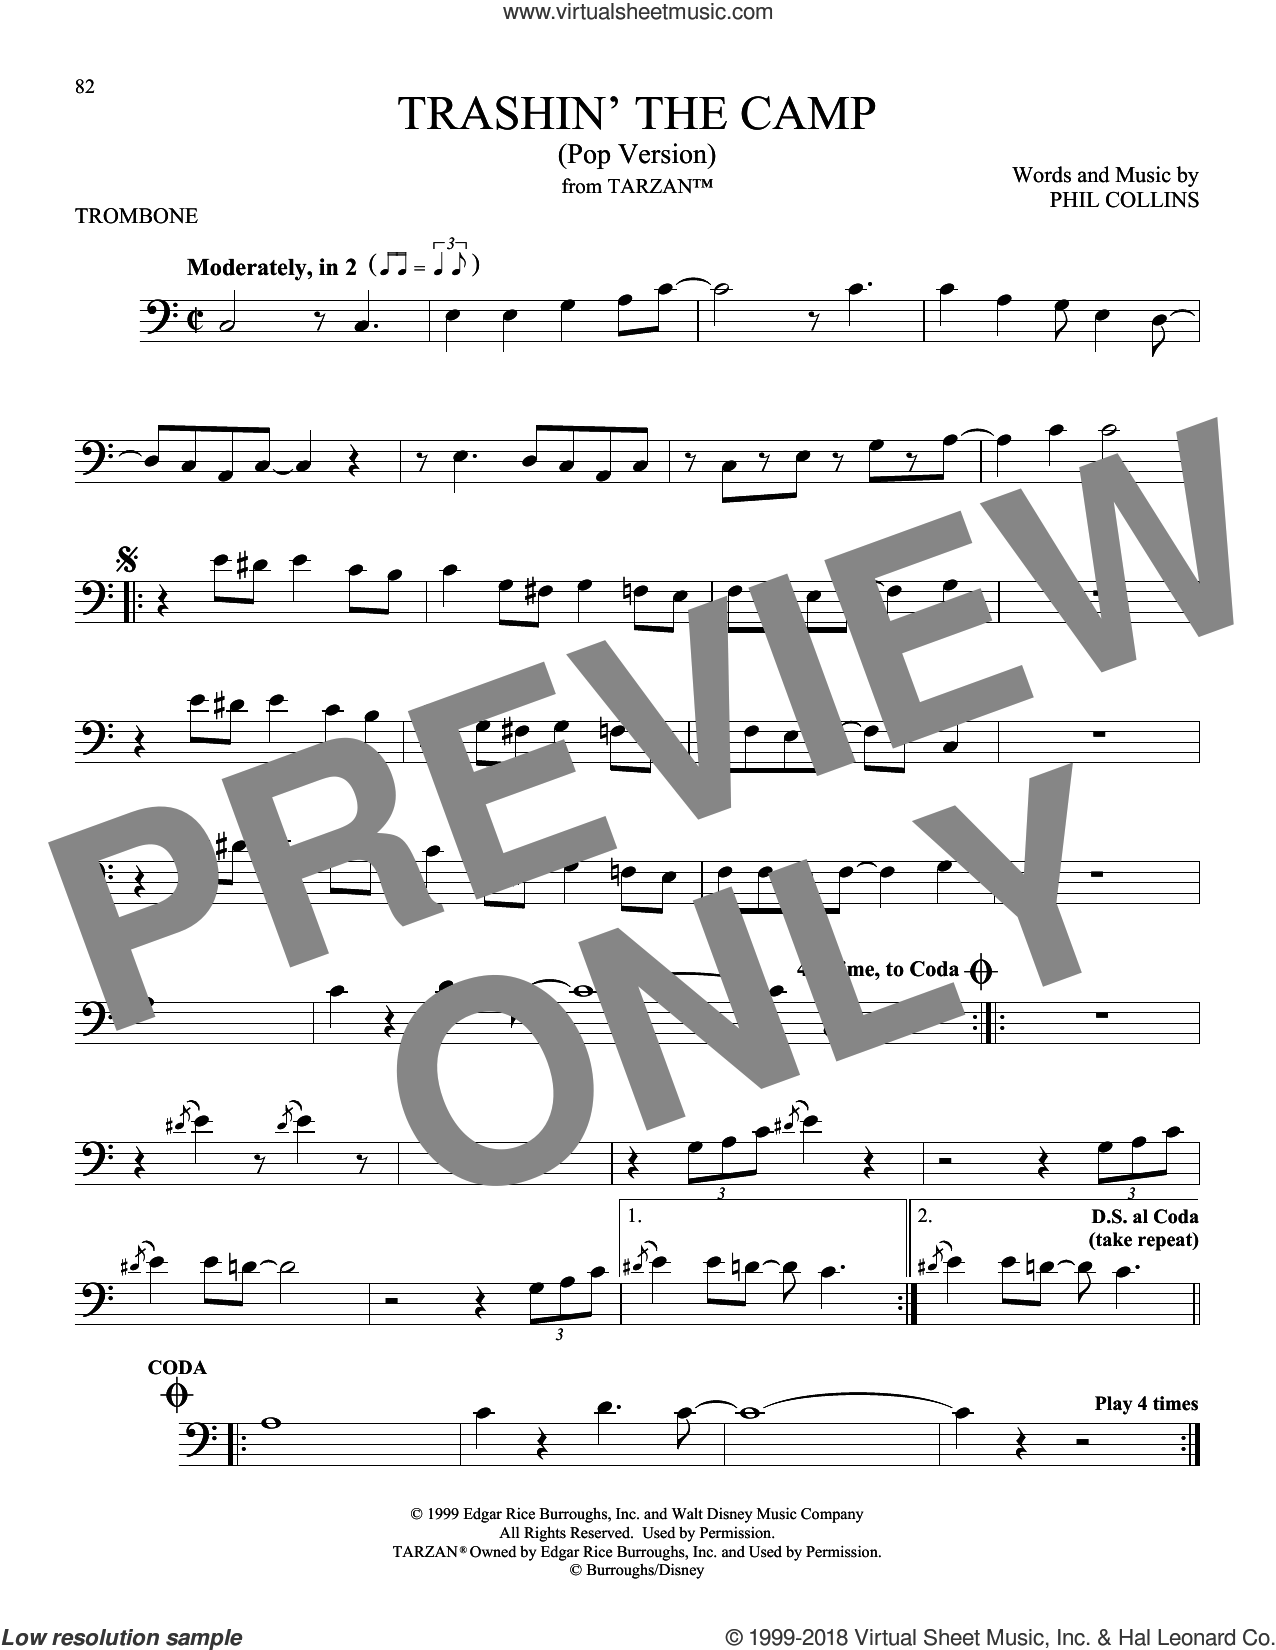 Trashin' The Camp (Pop Version) sheet music for trombone solo by Phil Collins, intermediate skill level